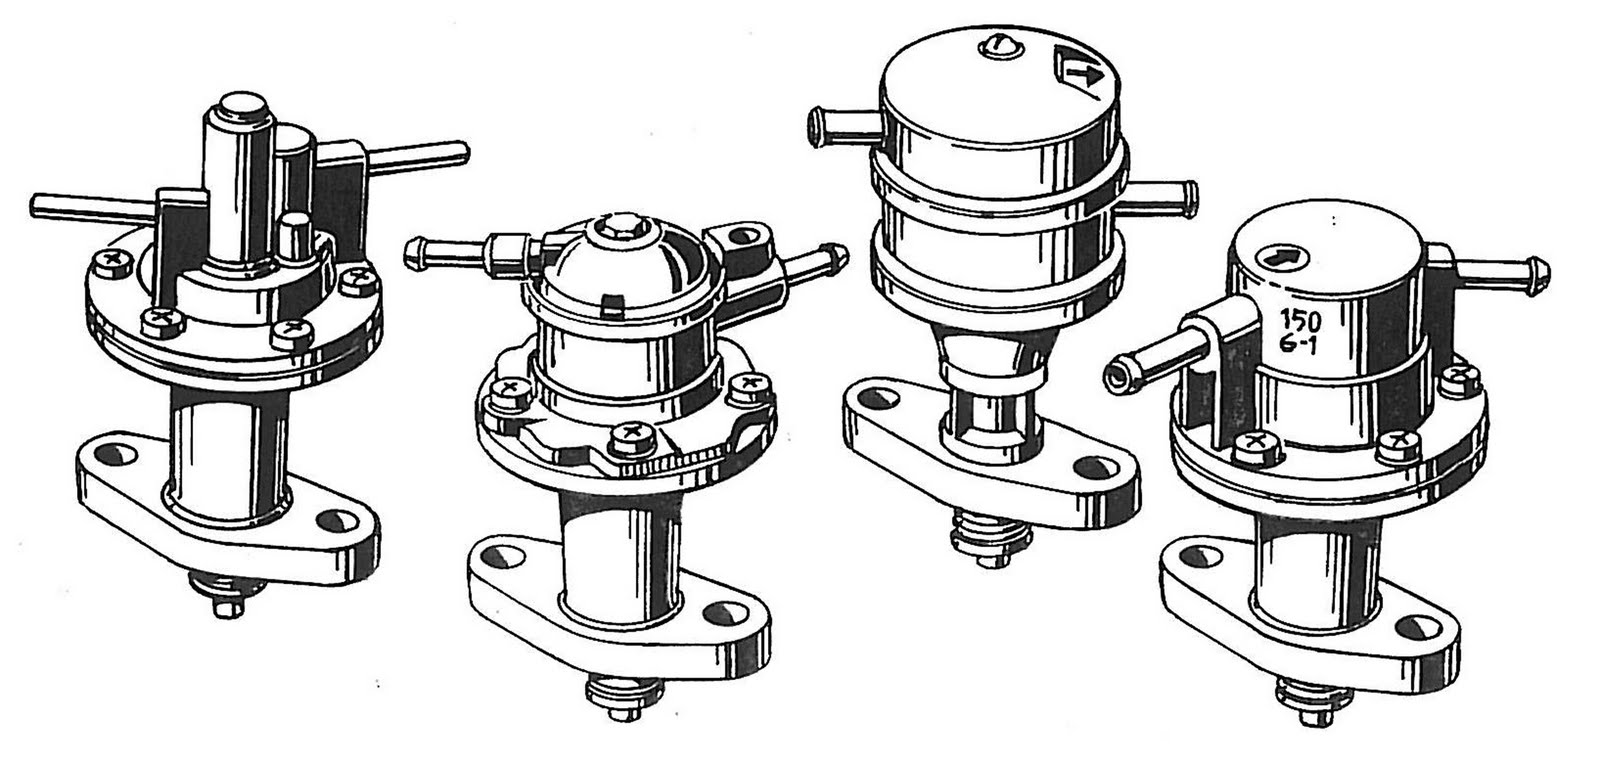 SAAB JOURNAL: VINTAGE SAAB V4 FUEL PUMPS